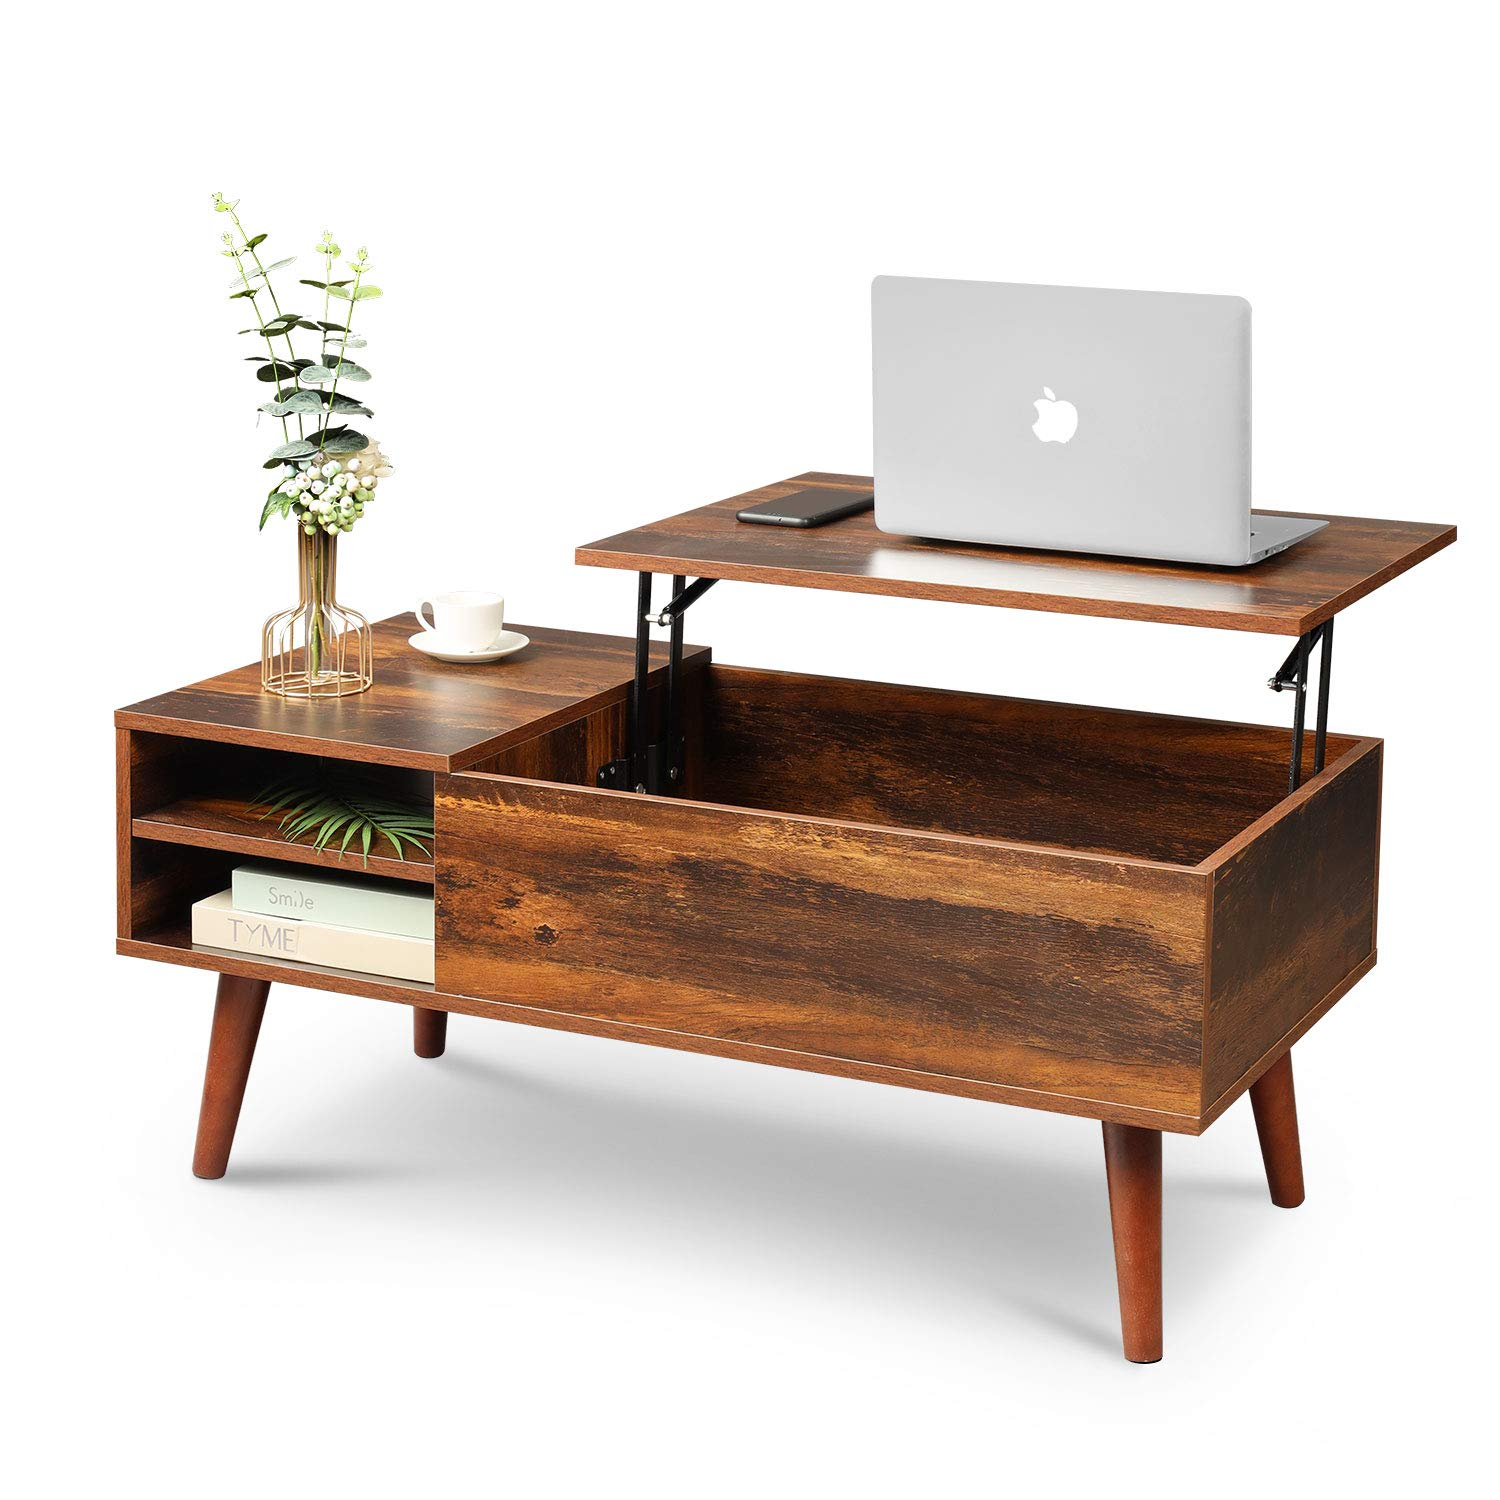 Wlive Wood Lift Top Coffee Table With Hidden Compartment And Adjustable Storage Shelf Lift Tabletop Dining Table For Home Living Room Office Rustic Oak Buy Online In Grenada At Grenada Desertcart Com Productid